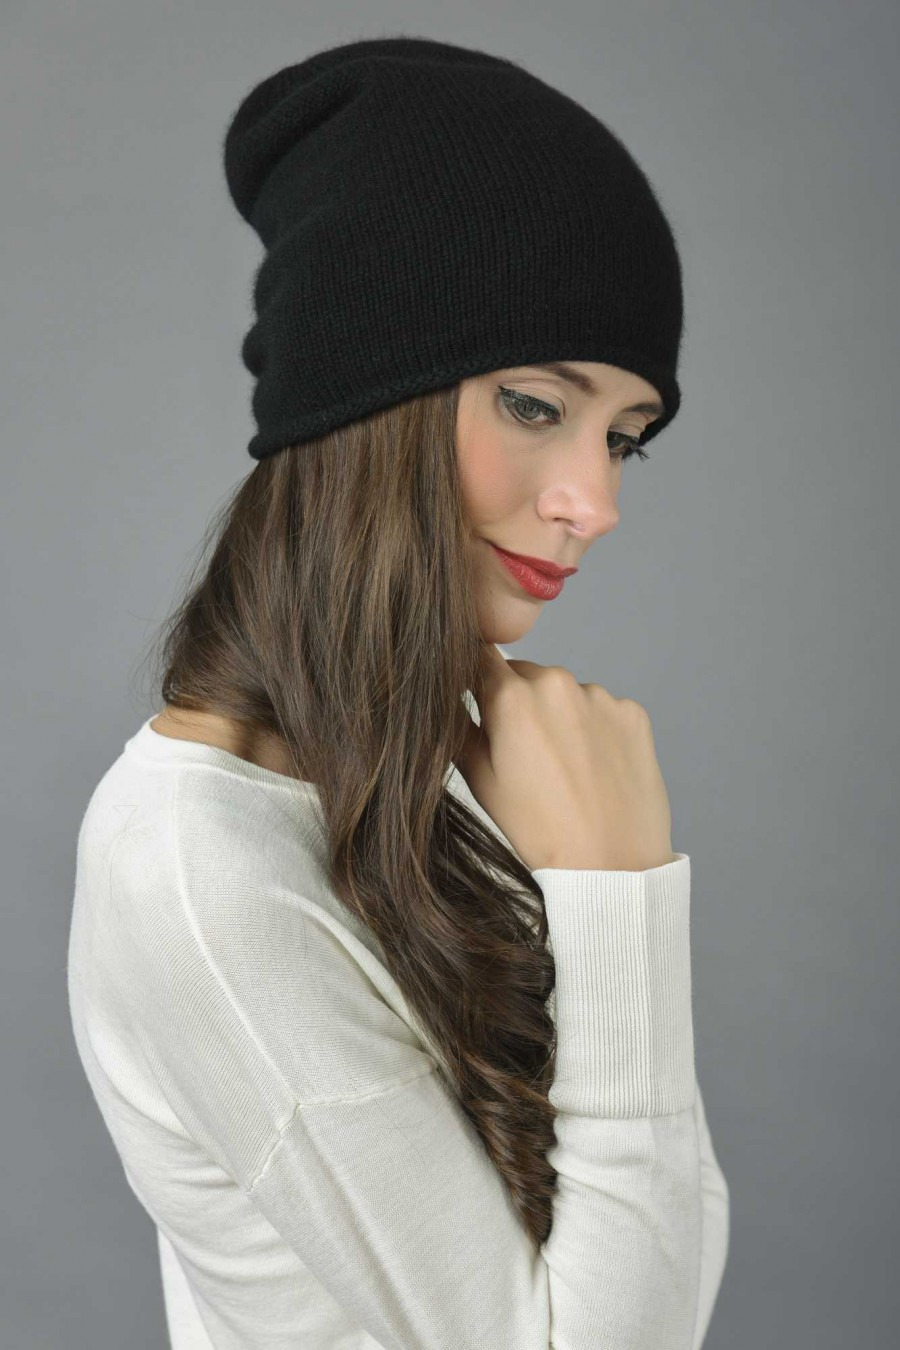 8a7ad373d65ea Pure Cashmere Plain Knitted Slouchy Beanie Hat in Black